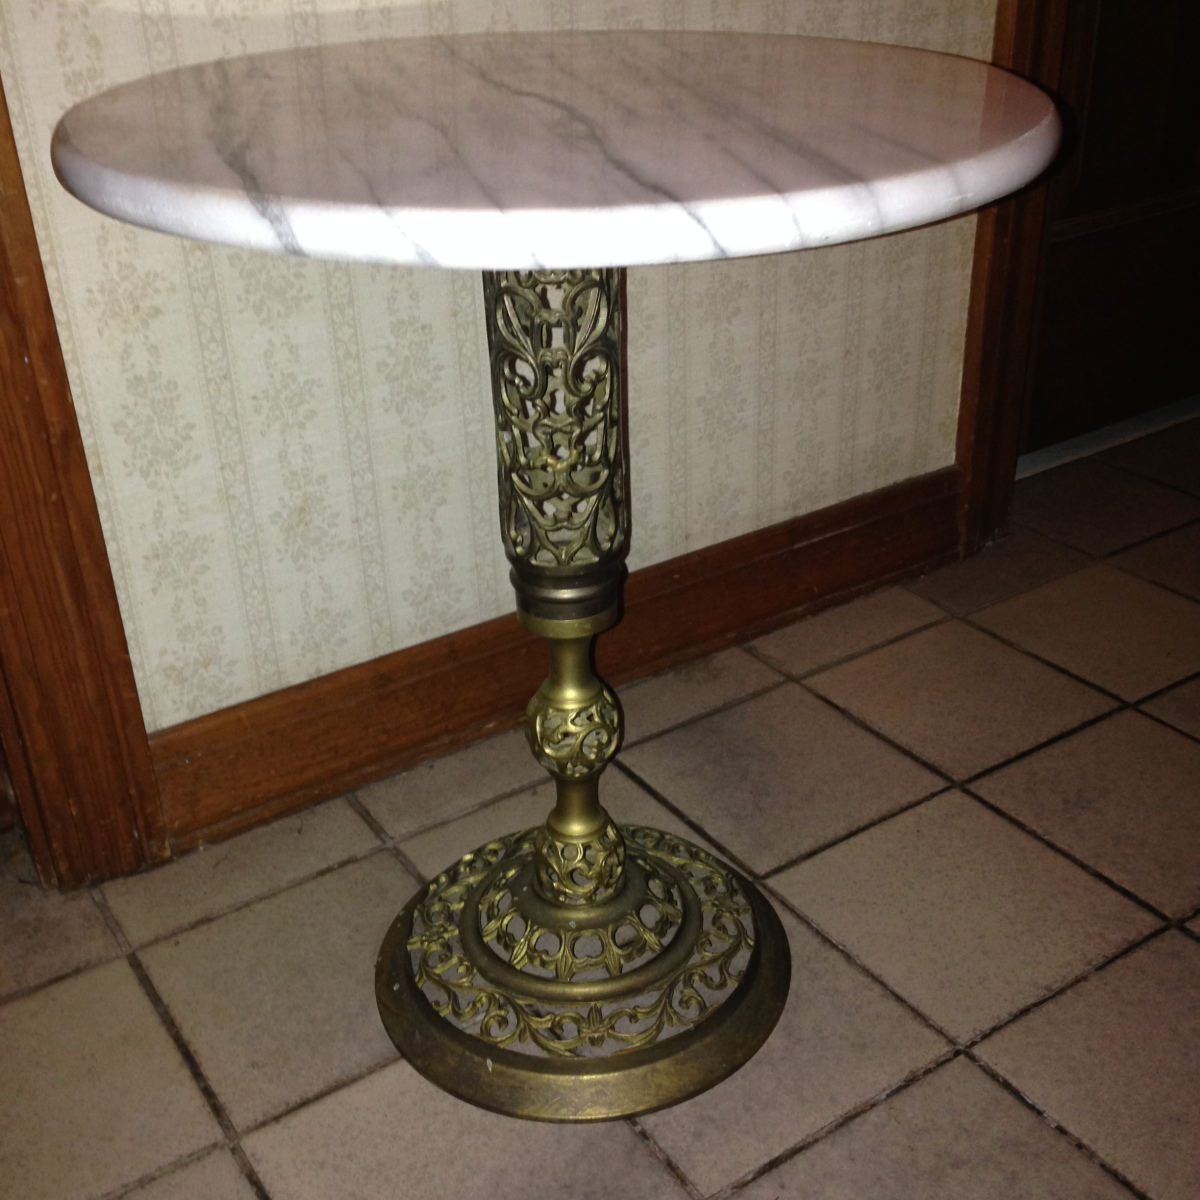 marble top end tables house design french accent table sold vintage round with ornate brass nate berkus gold long outdoor furniture for entry foyer decorative storage cabinet